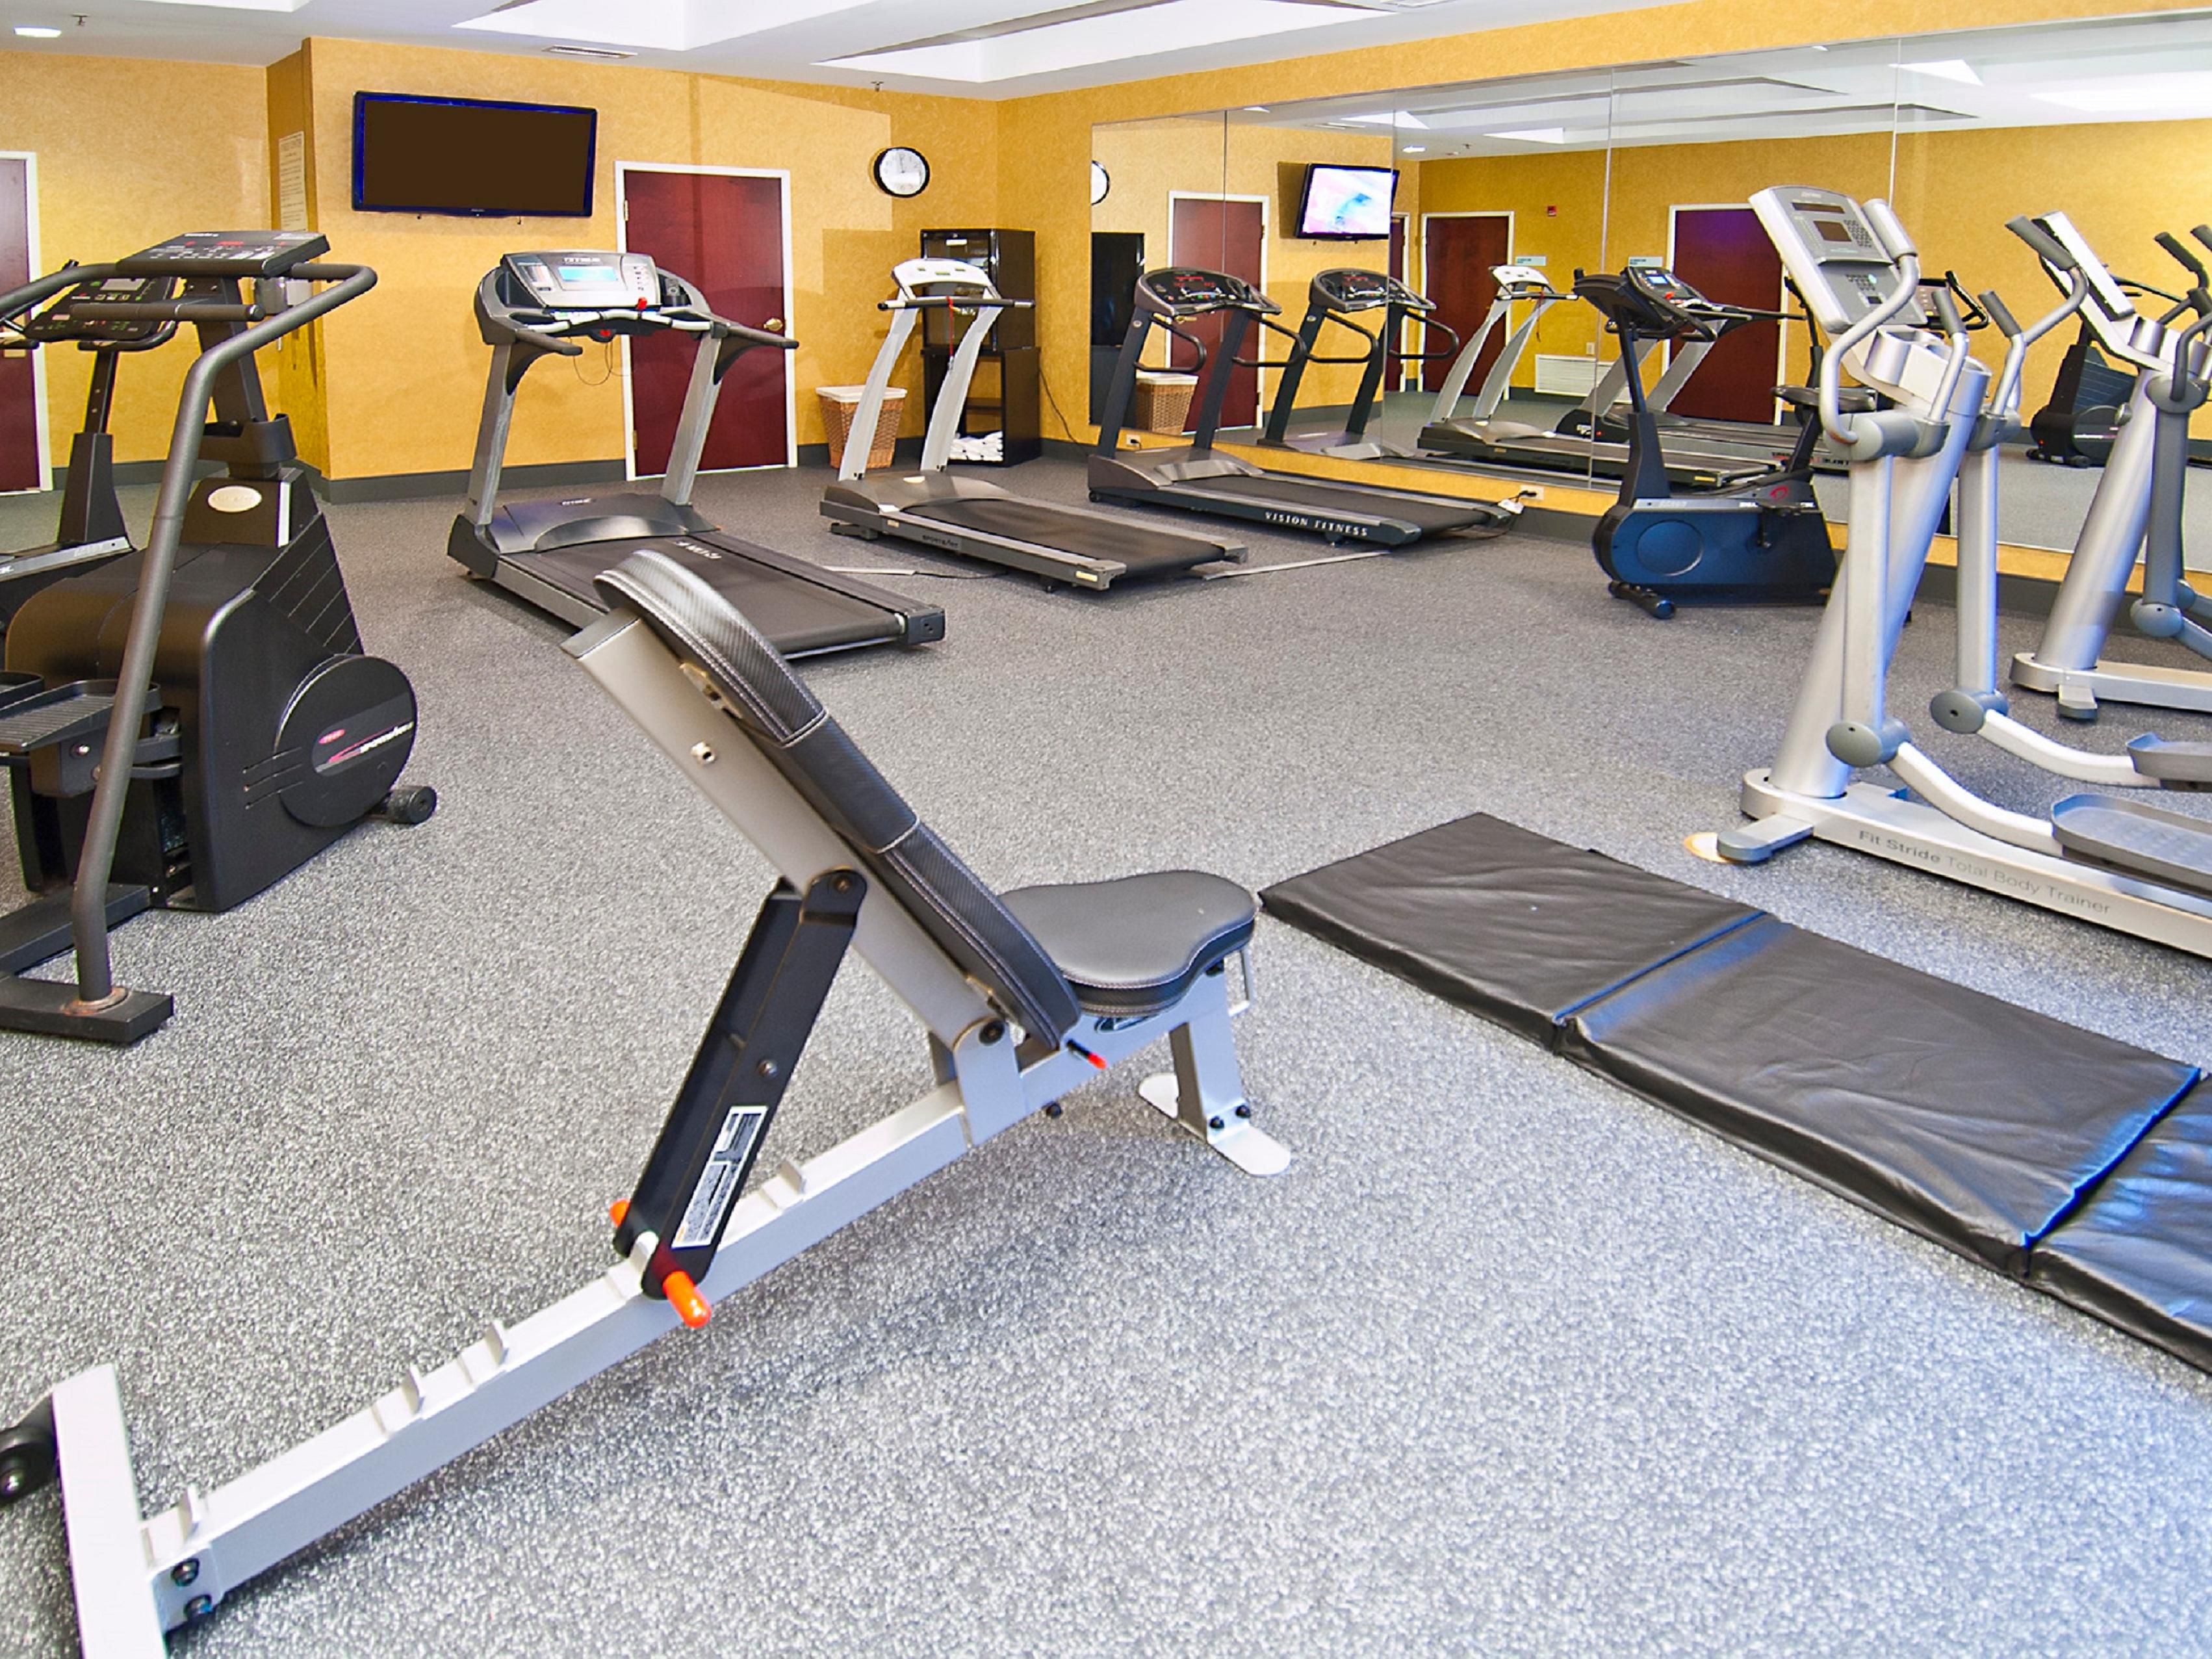 Fitness Center, open 24 hours.